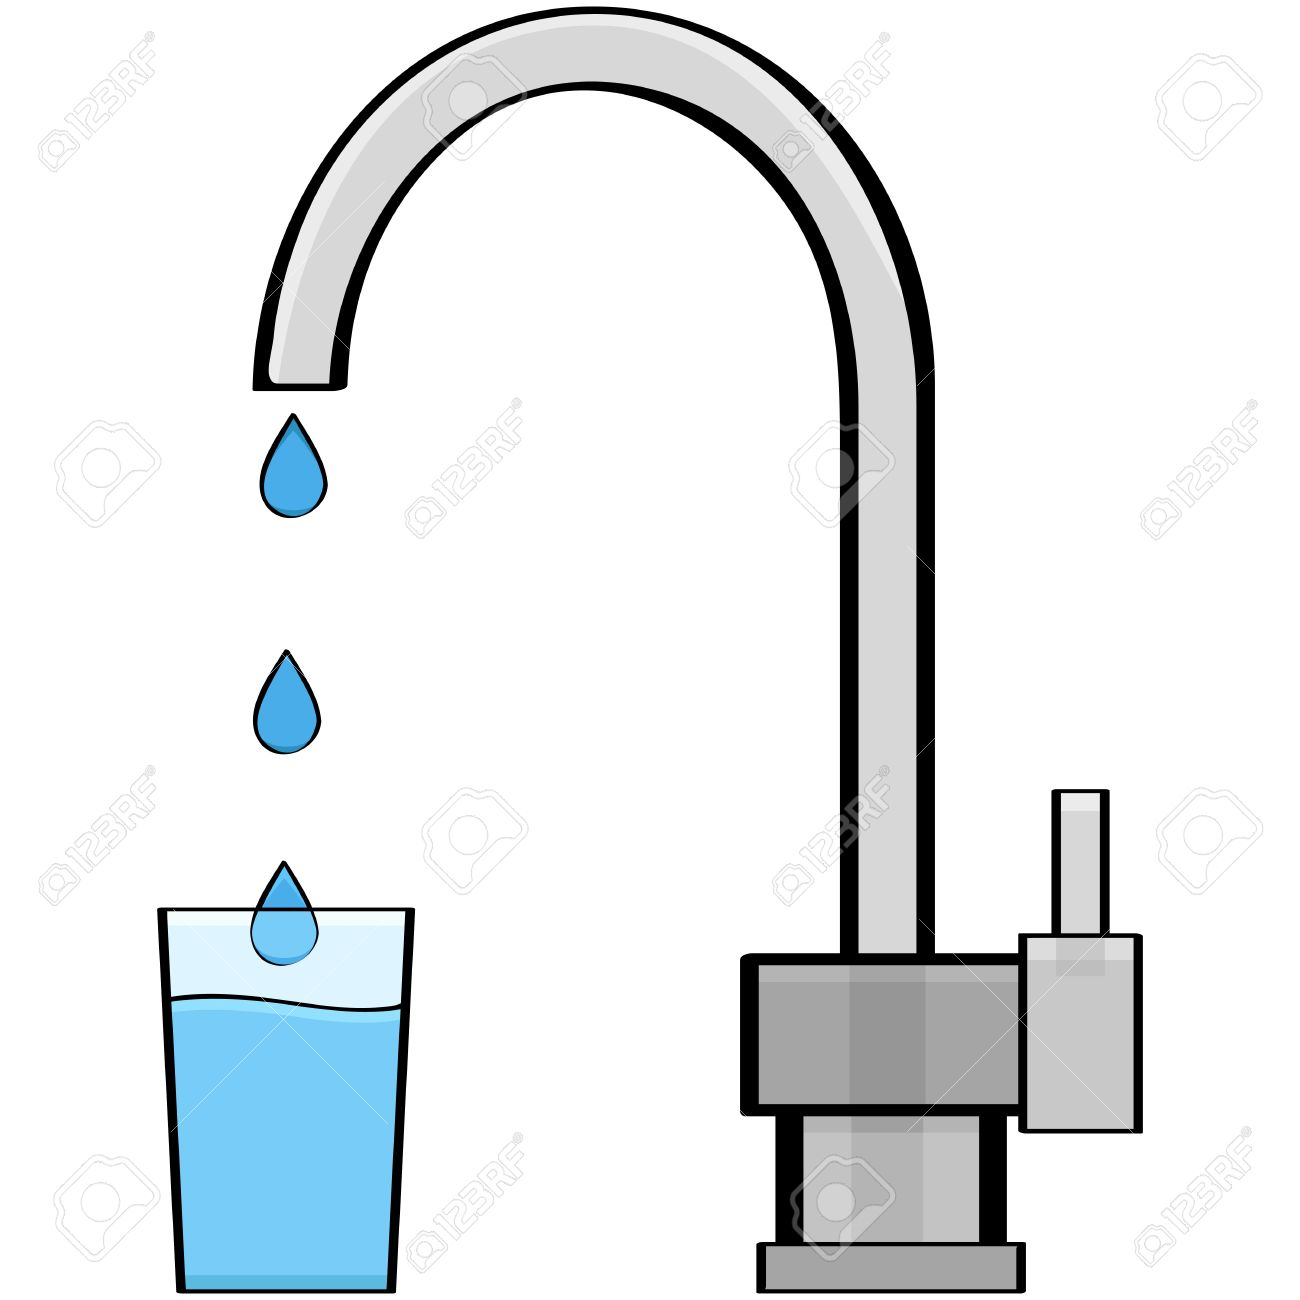 Cartoon Illustration Showing Water Coming Out Of A Tap And Into ...